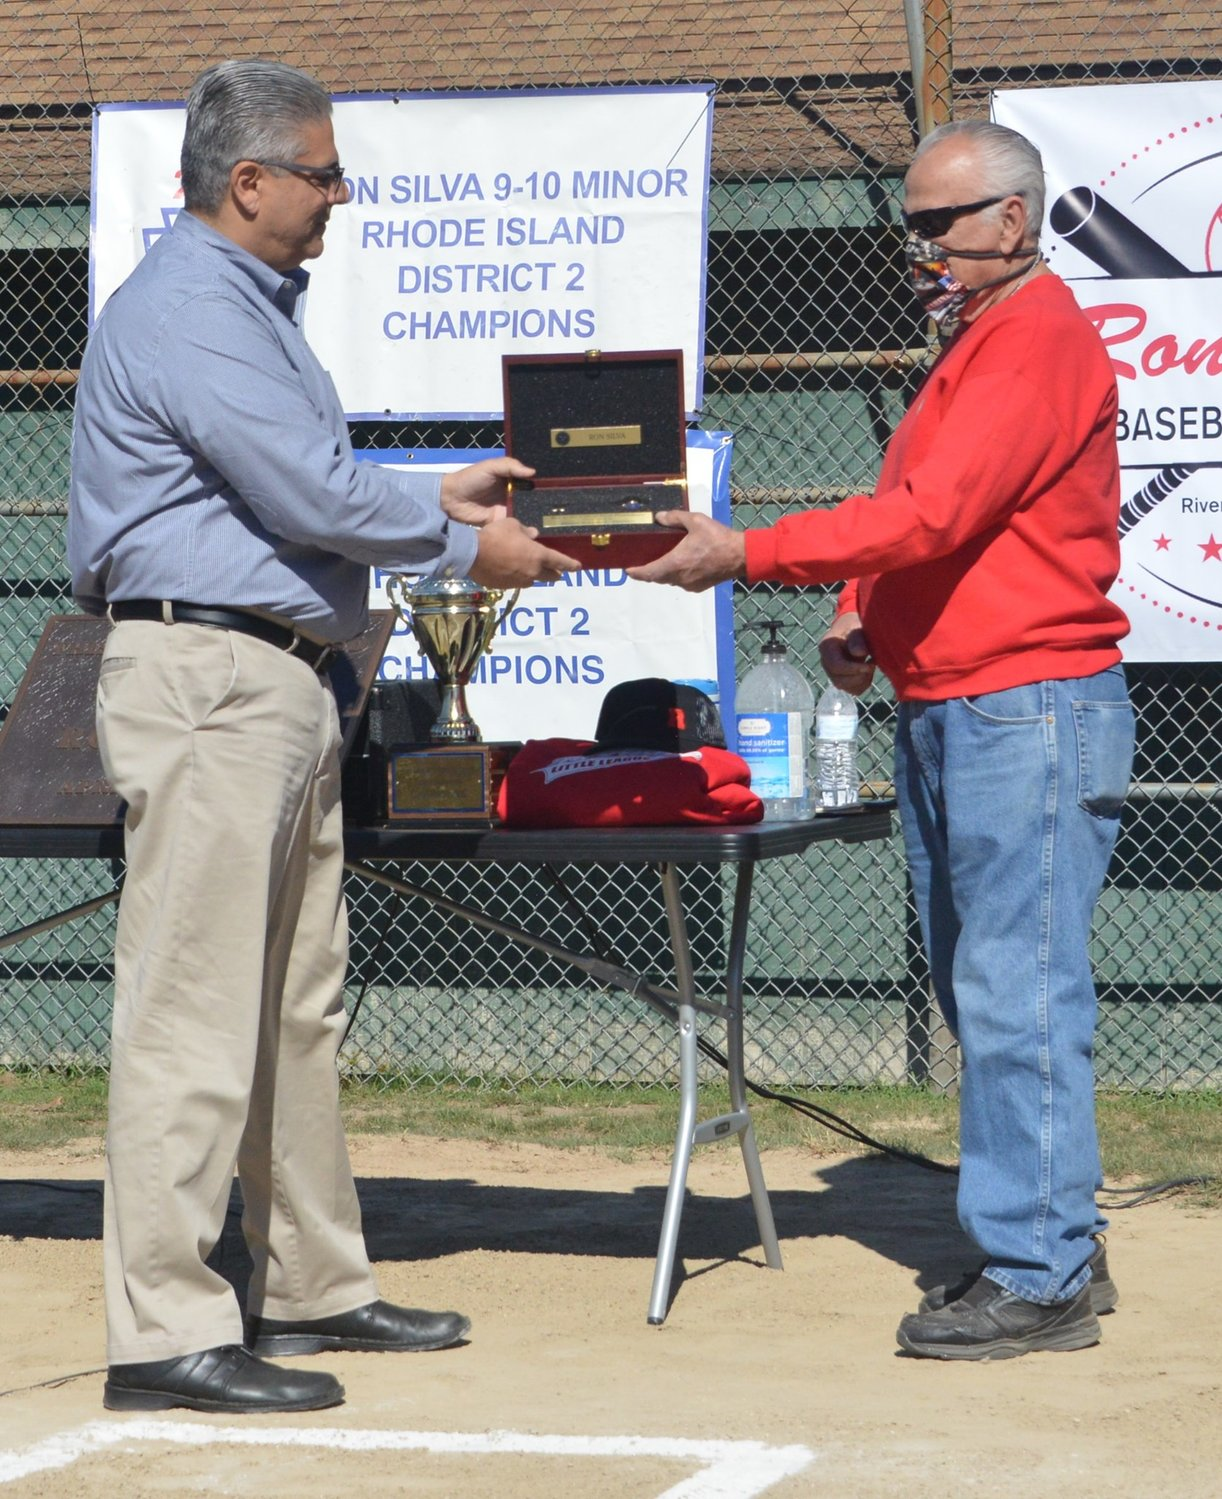 Mayor Bob DaSilva giving Ron Silva a key to the city at Forbes Field last month